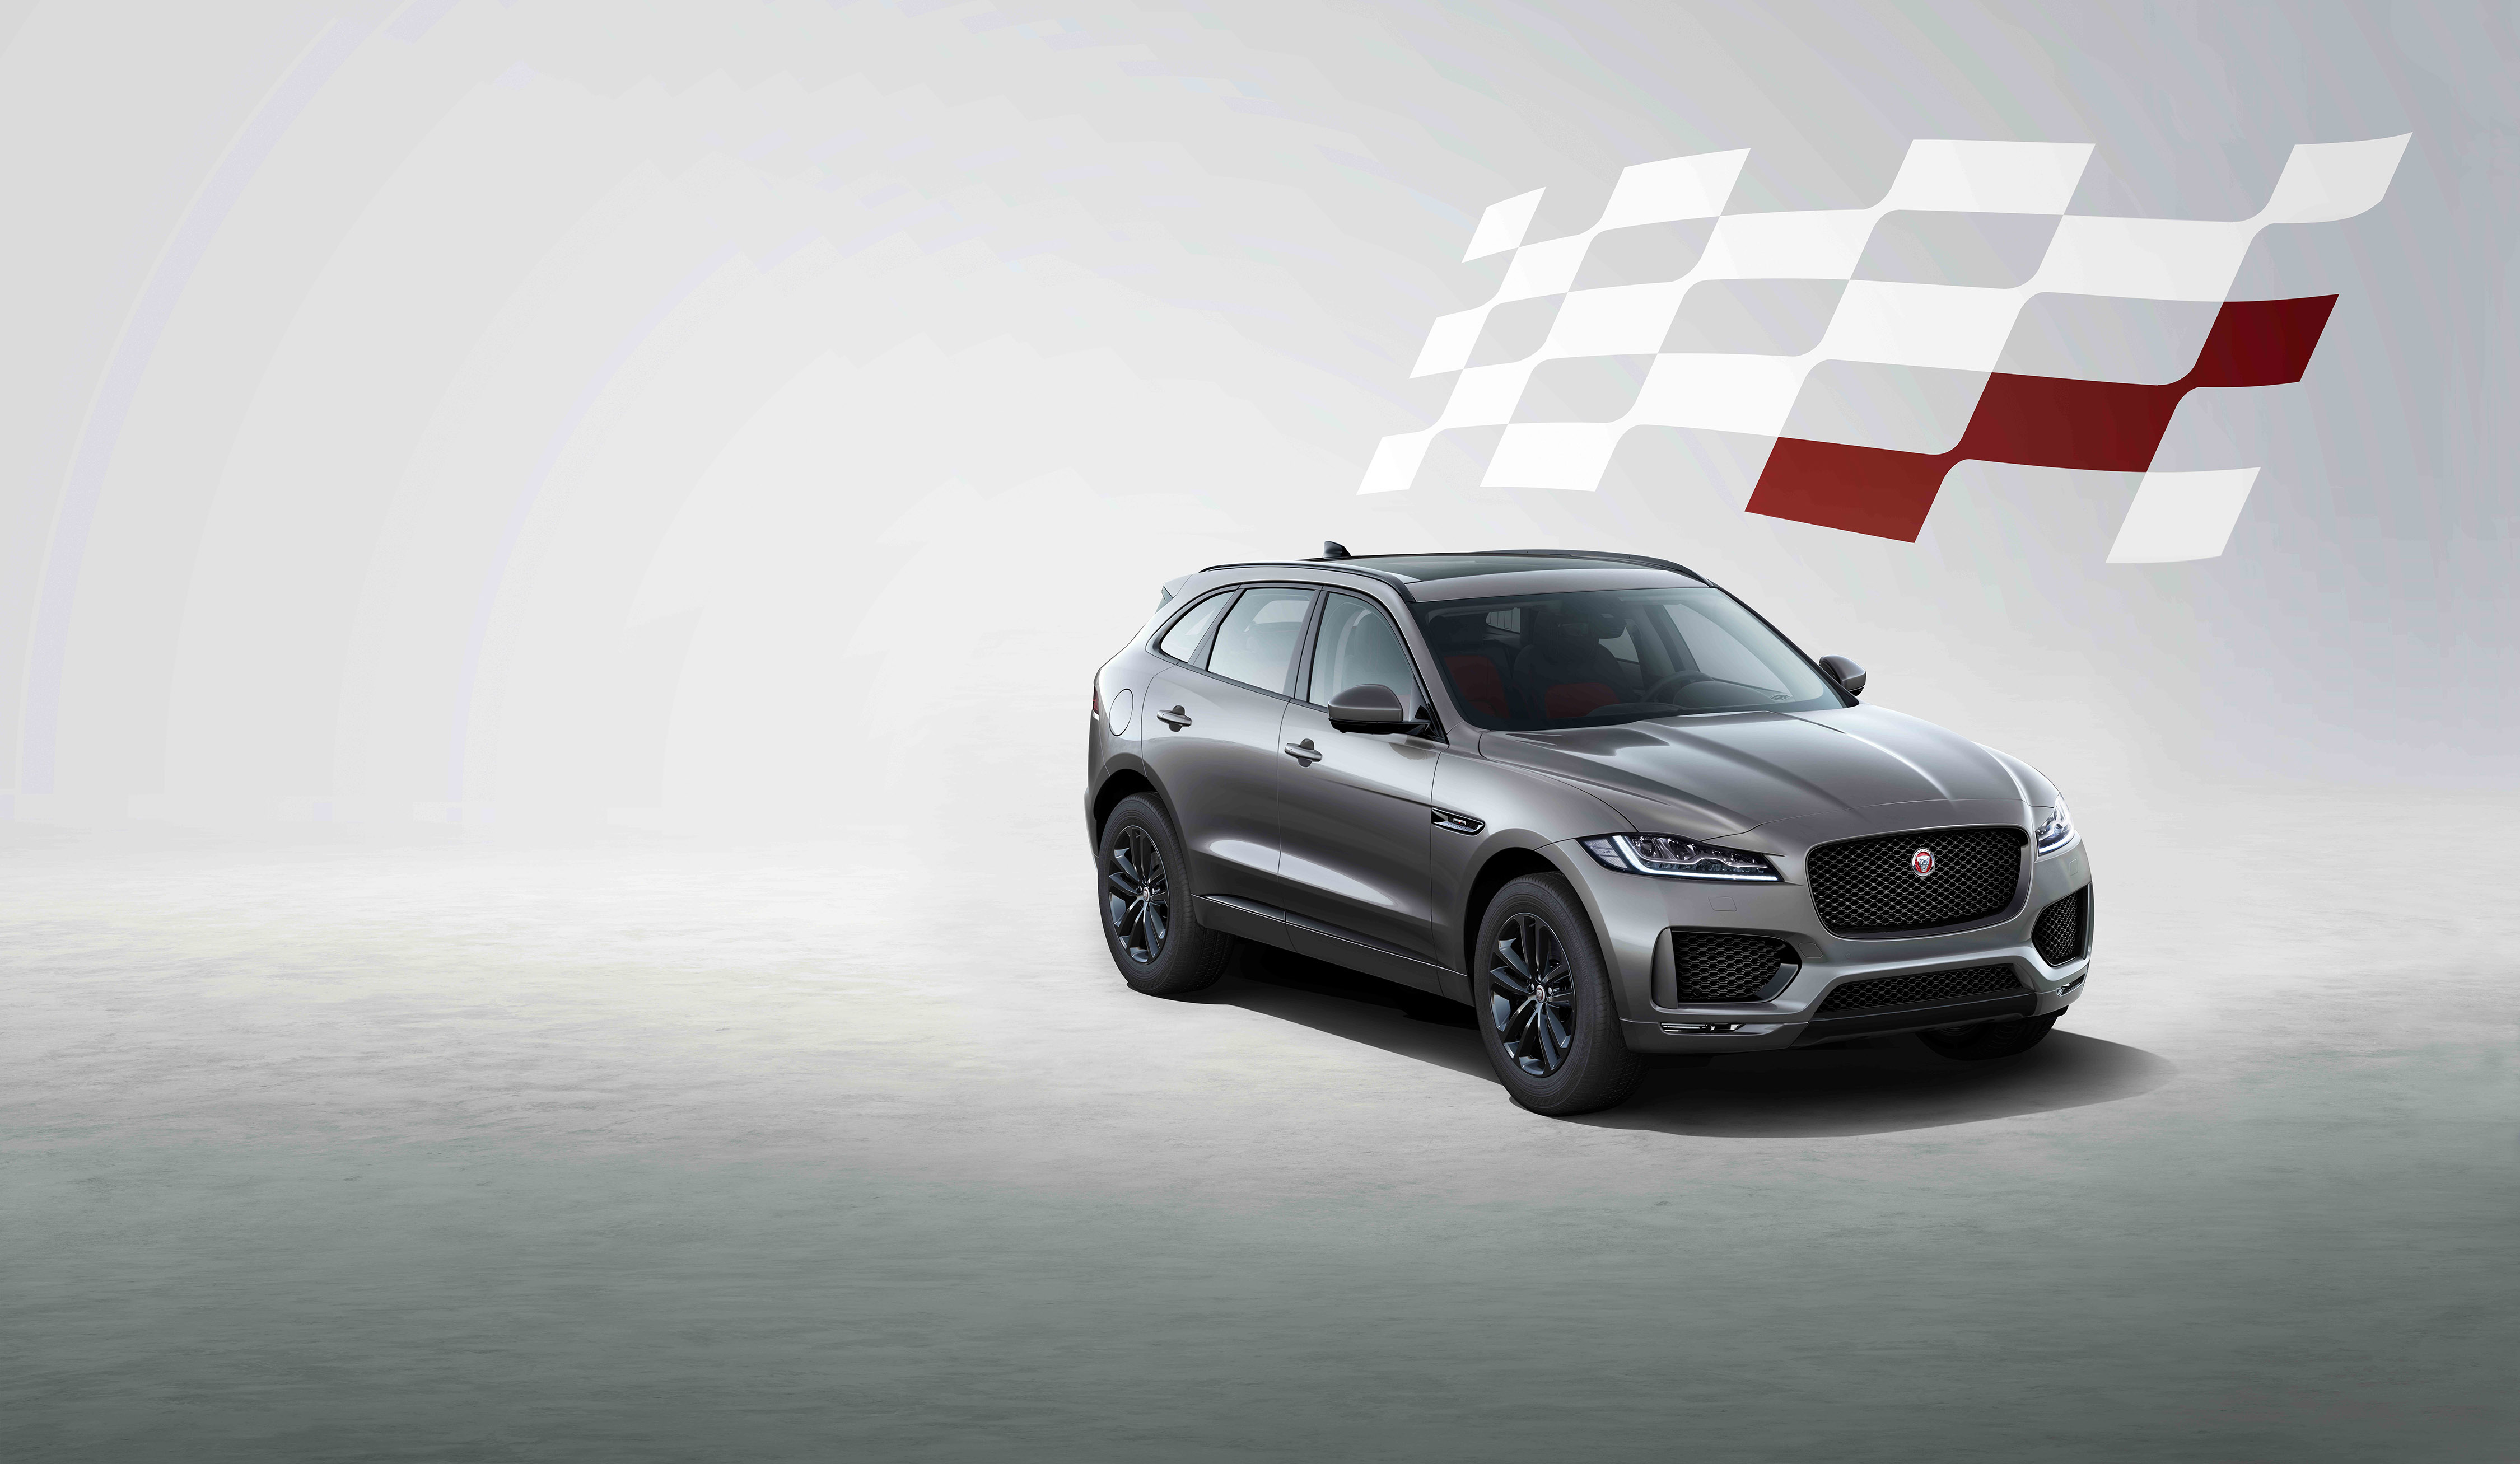 306761 jag f pace 20my chequered flag 190319 010 pr d6496d original 1552999973